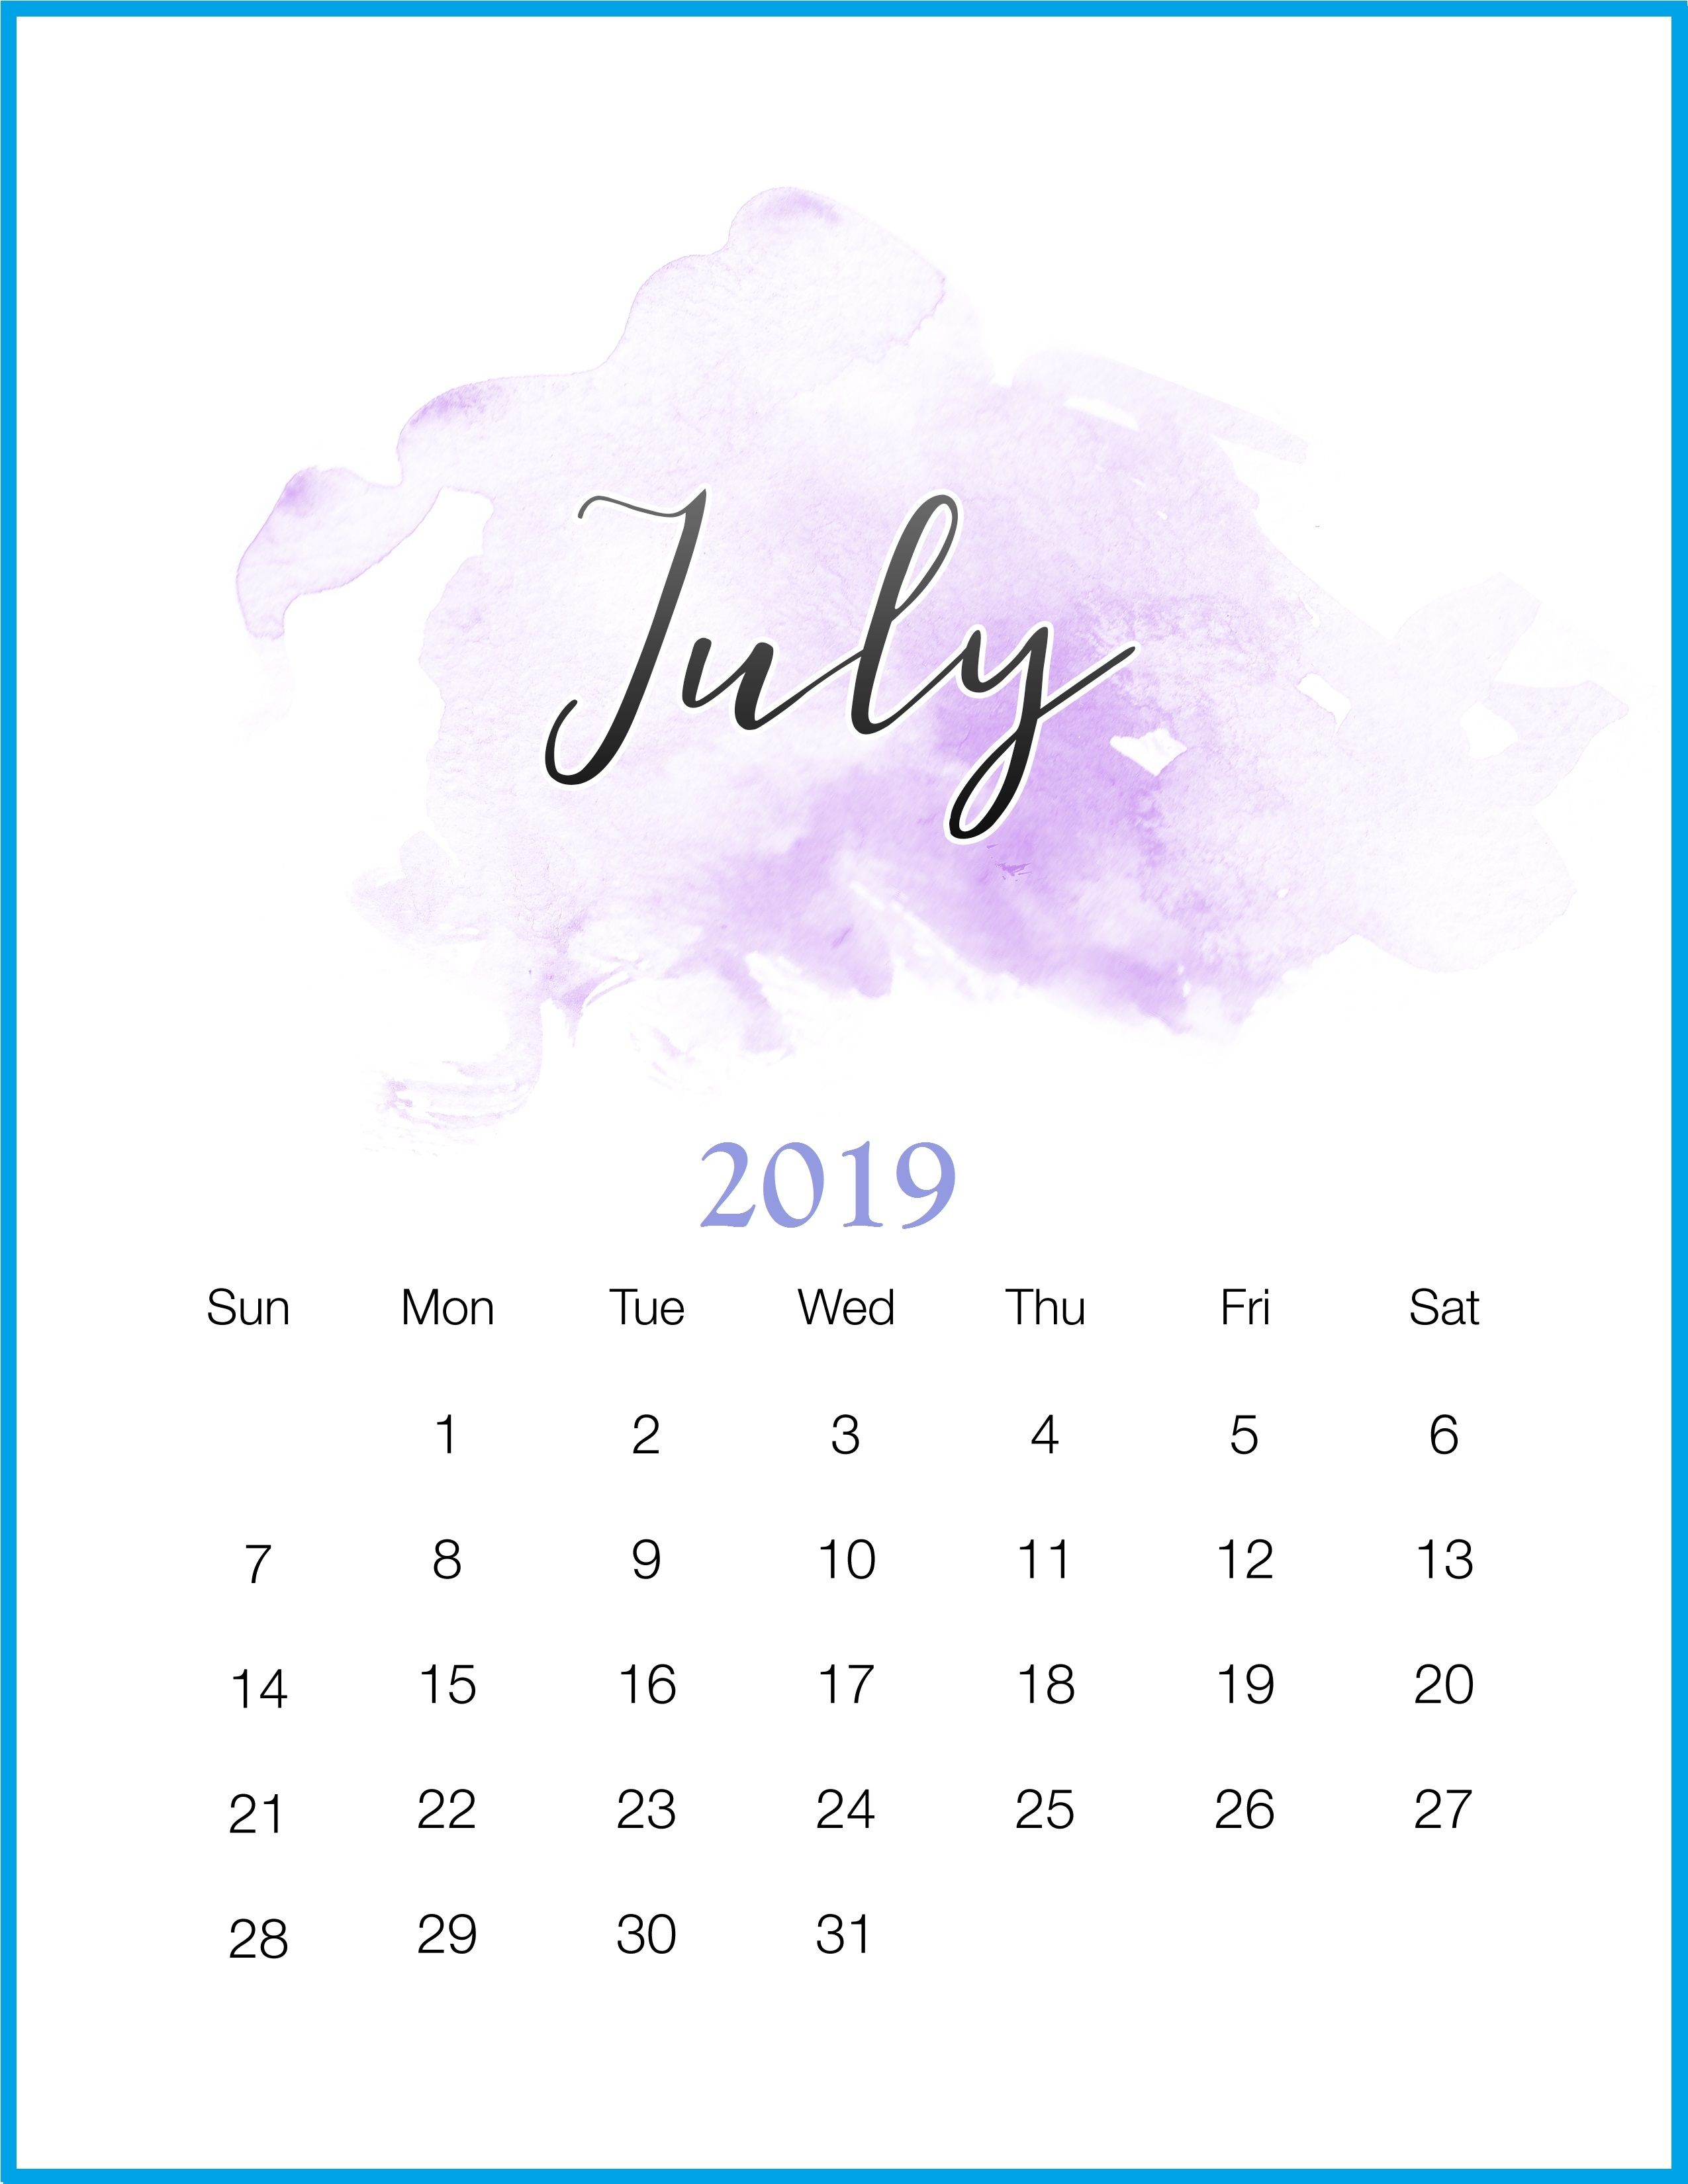 July 2019 Calendar Wallpapers - Wallpaper Cave pertaining to Cute July Calendar Template